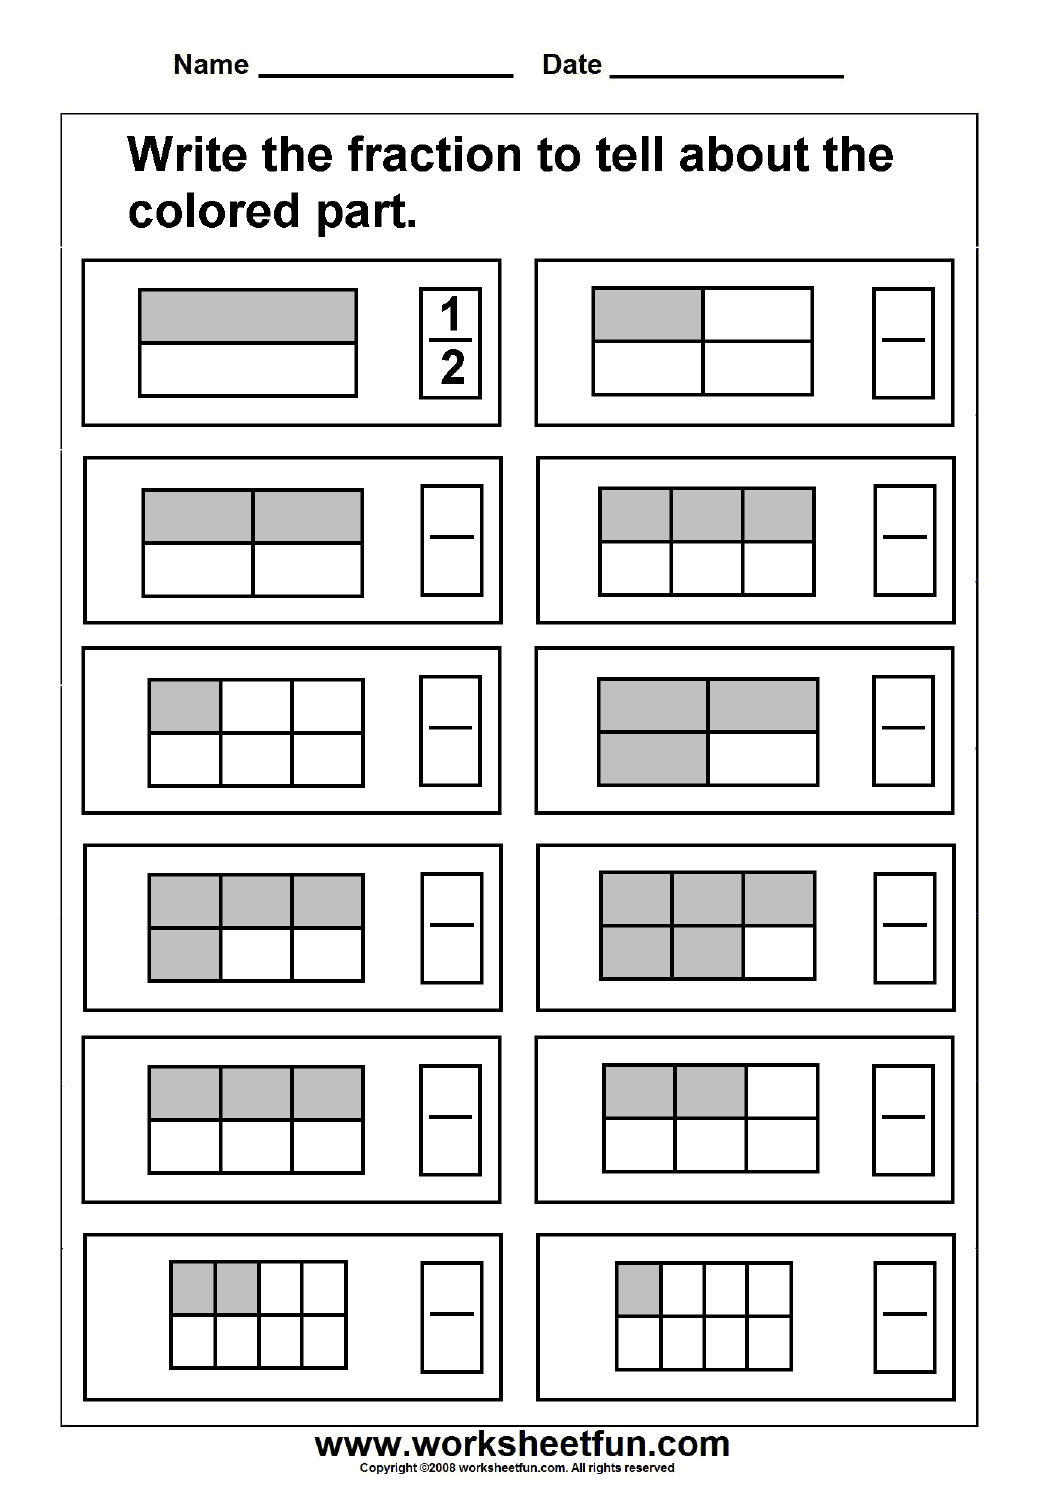 Fraction Model FREE Printable Worksheets Worksheetfun – Fraction Worksheets